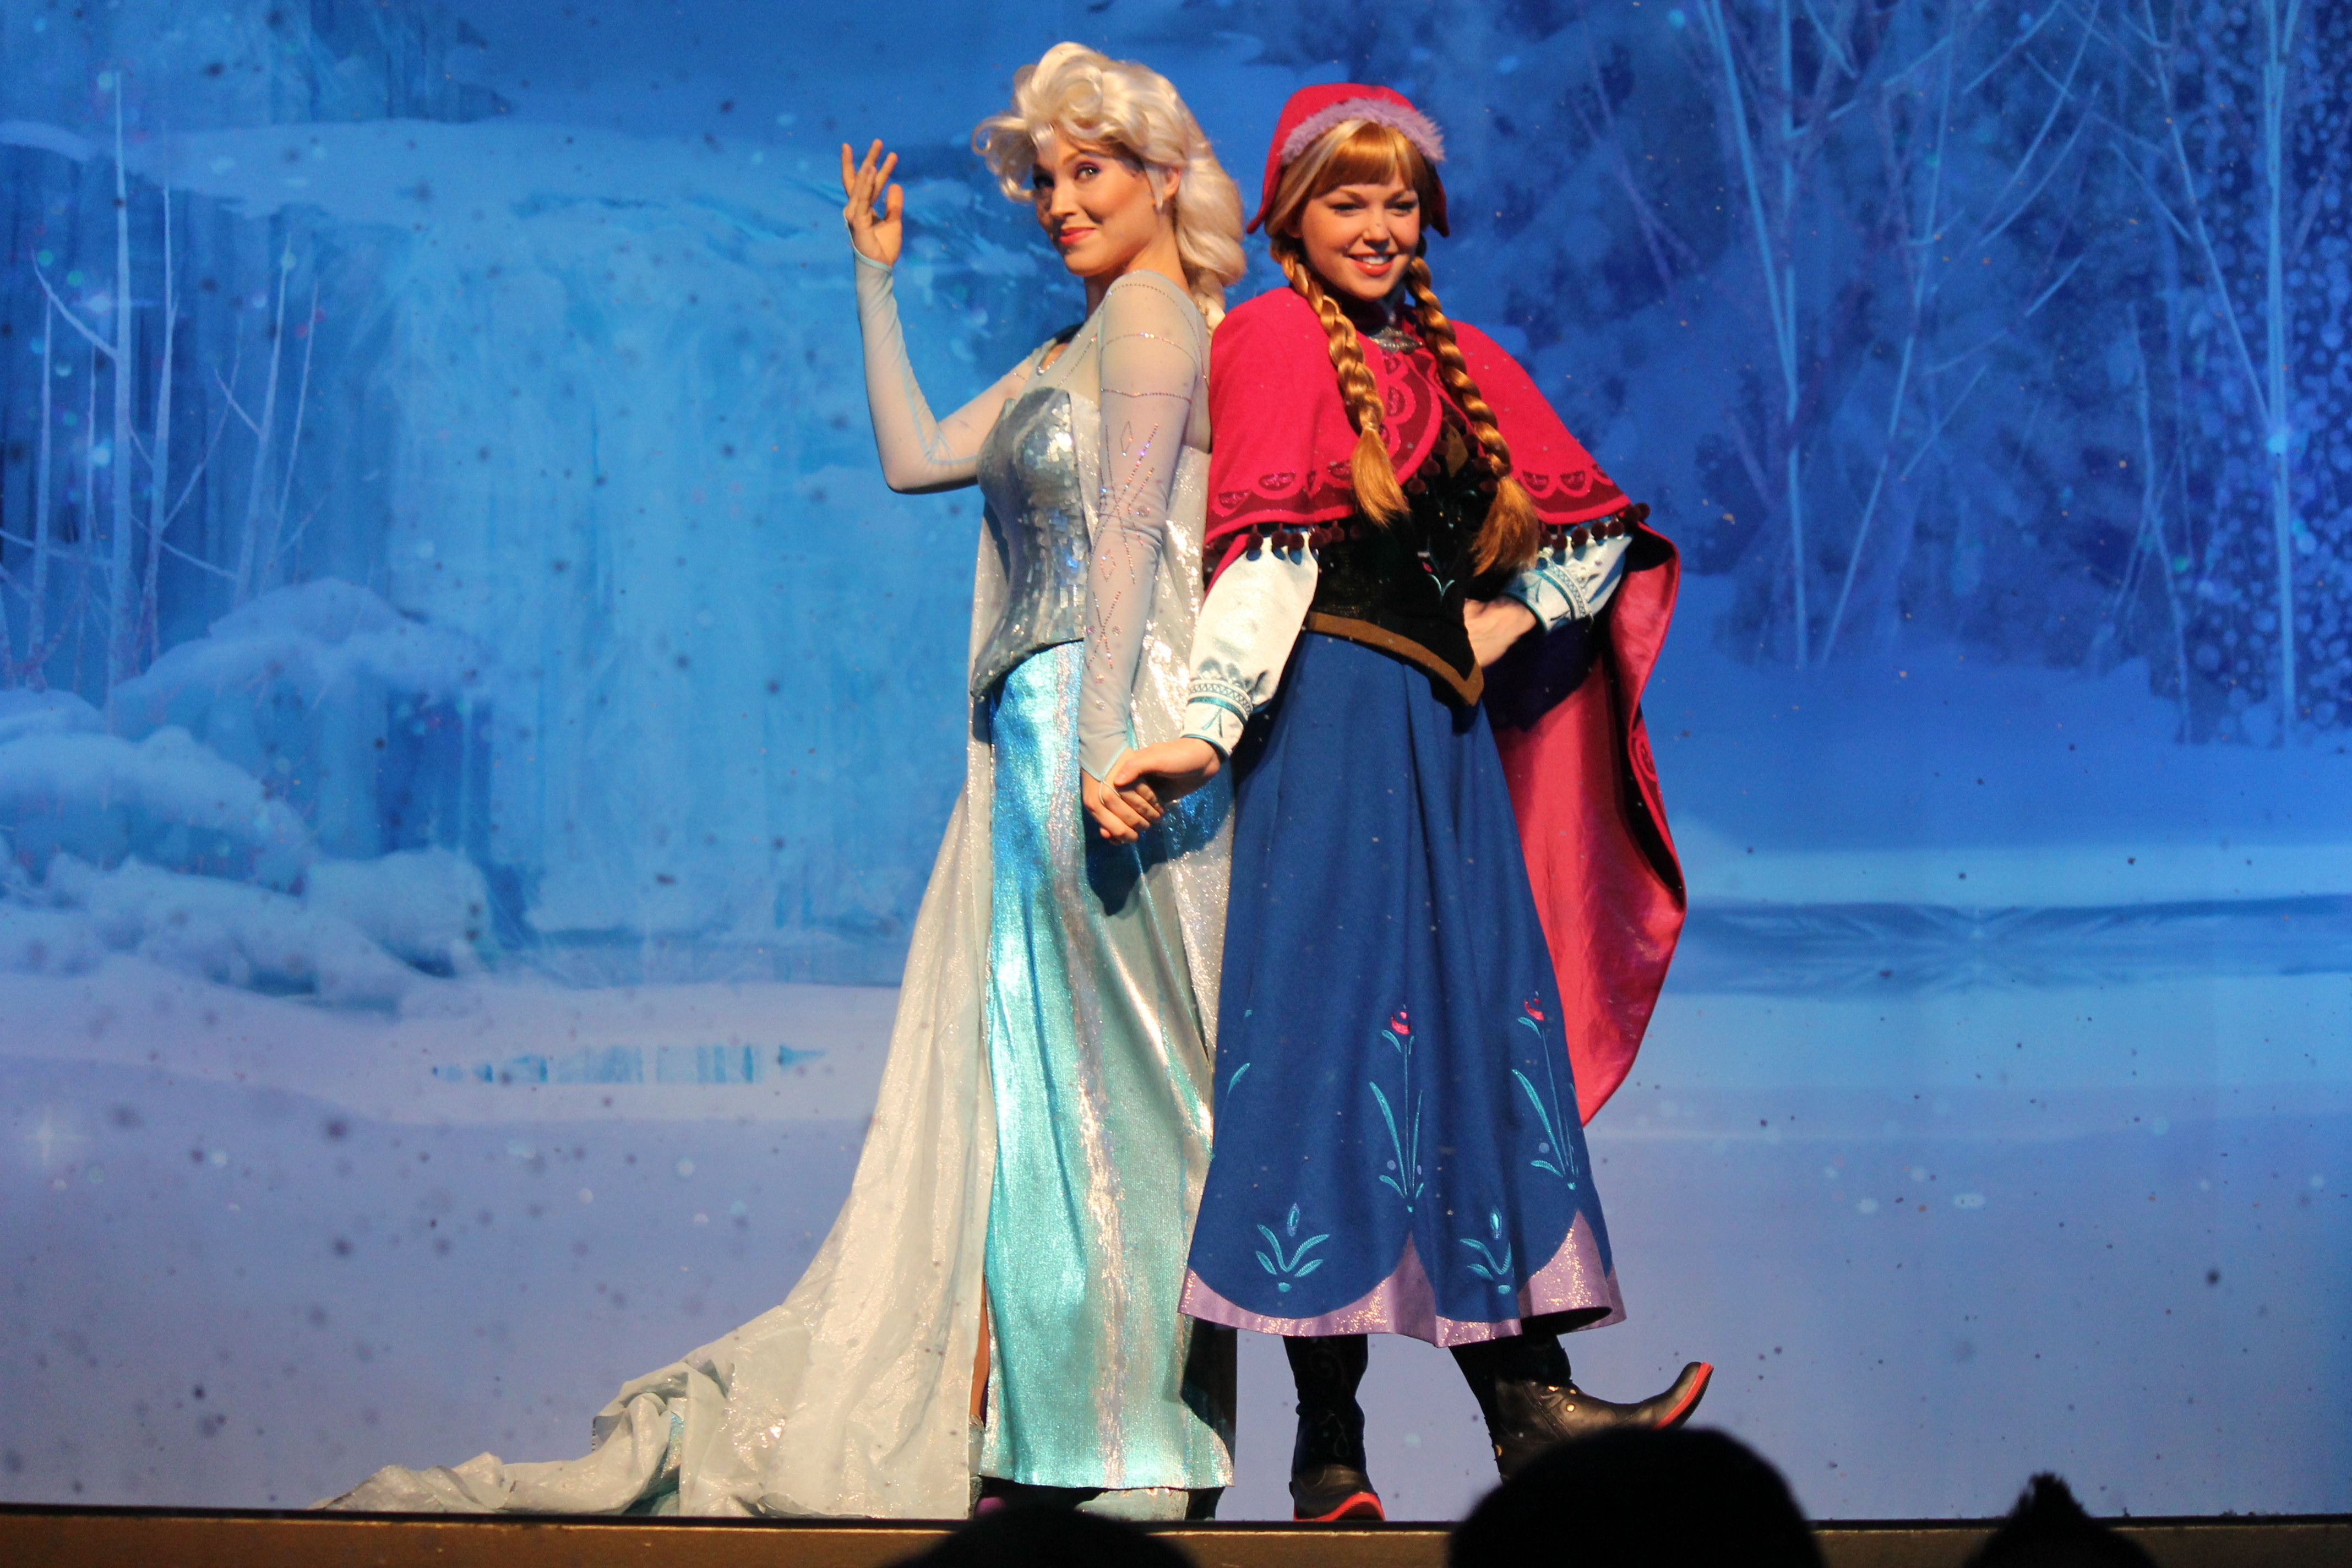 Elsa and Anna on stage at the El Capitan Theatre in Hollywood, CA. Photo by Loren R. Javier. Please do not distribute without attribution.